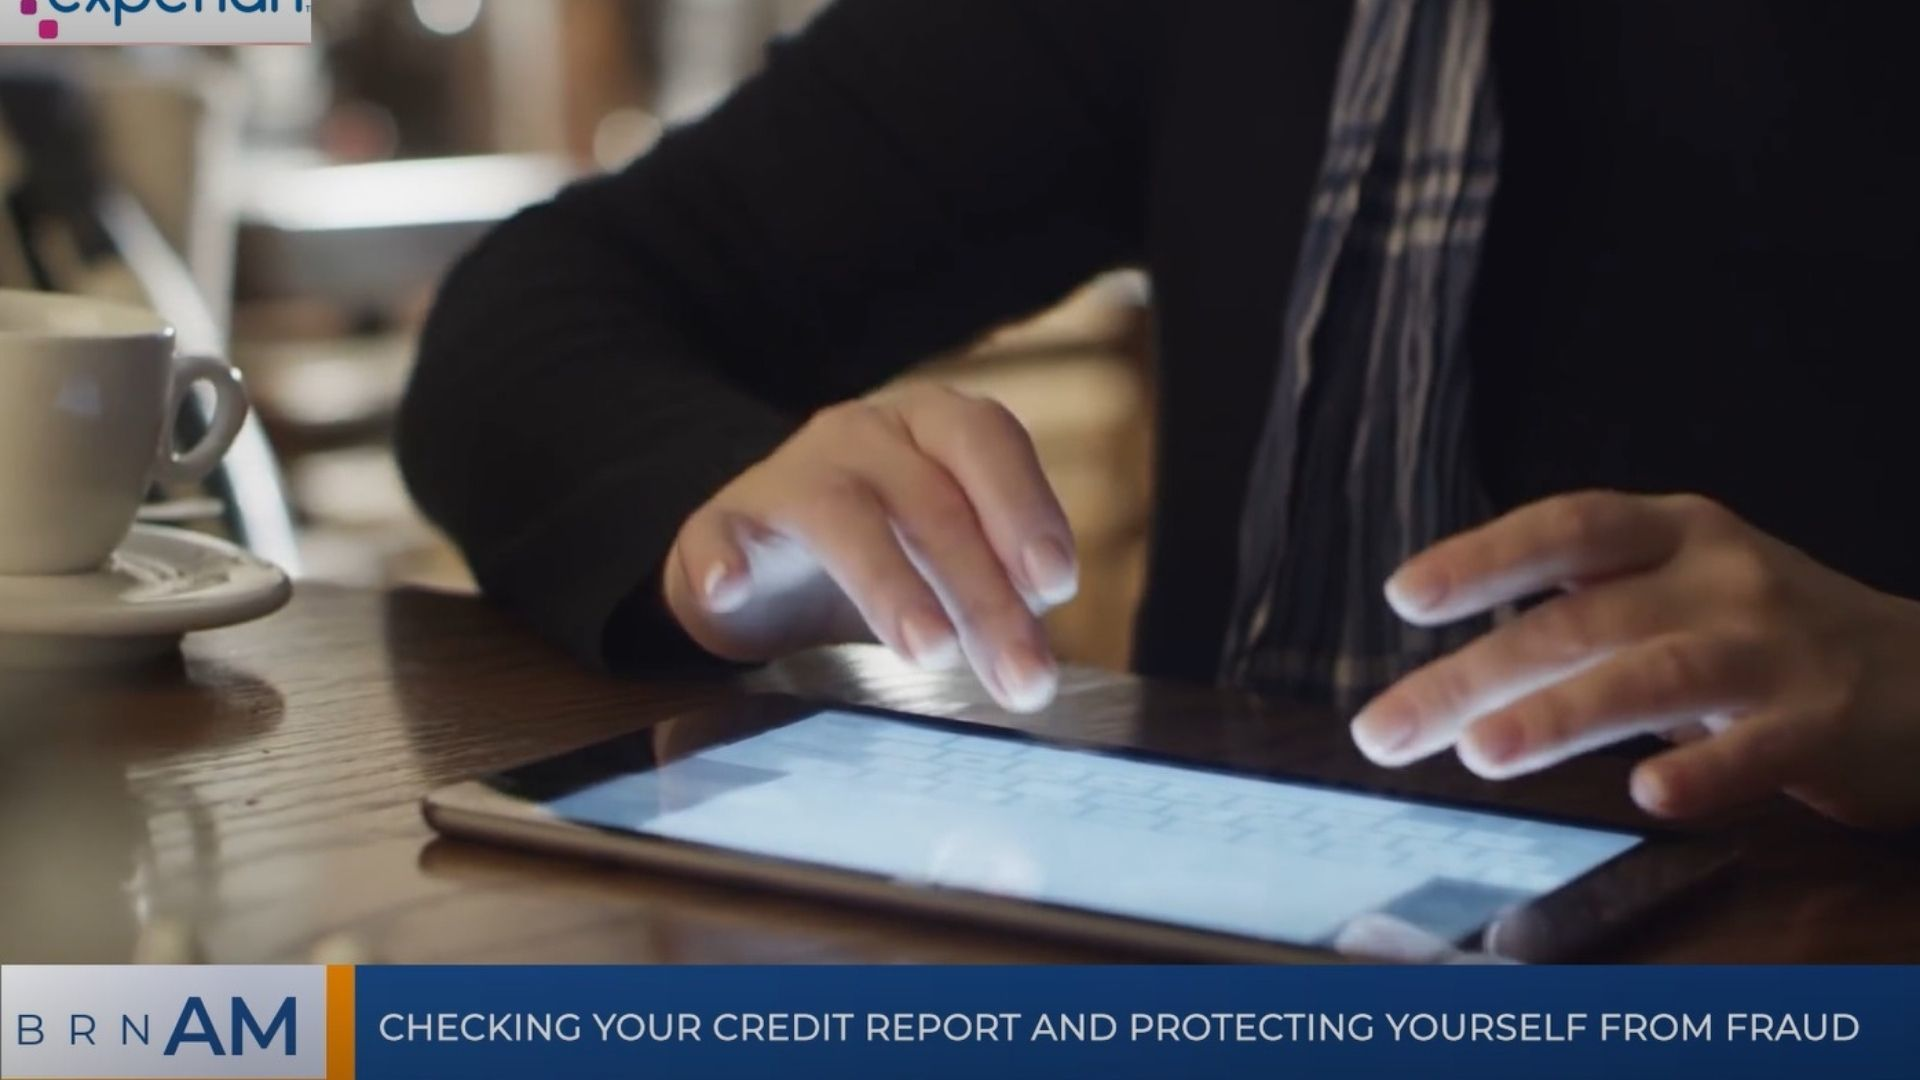 BRN AM | Checking your credit report and protecting yourself from fraud